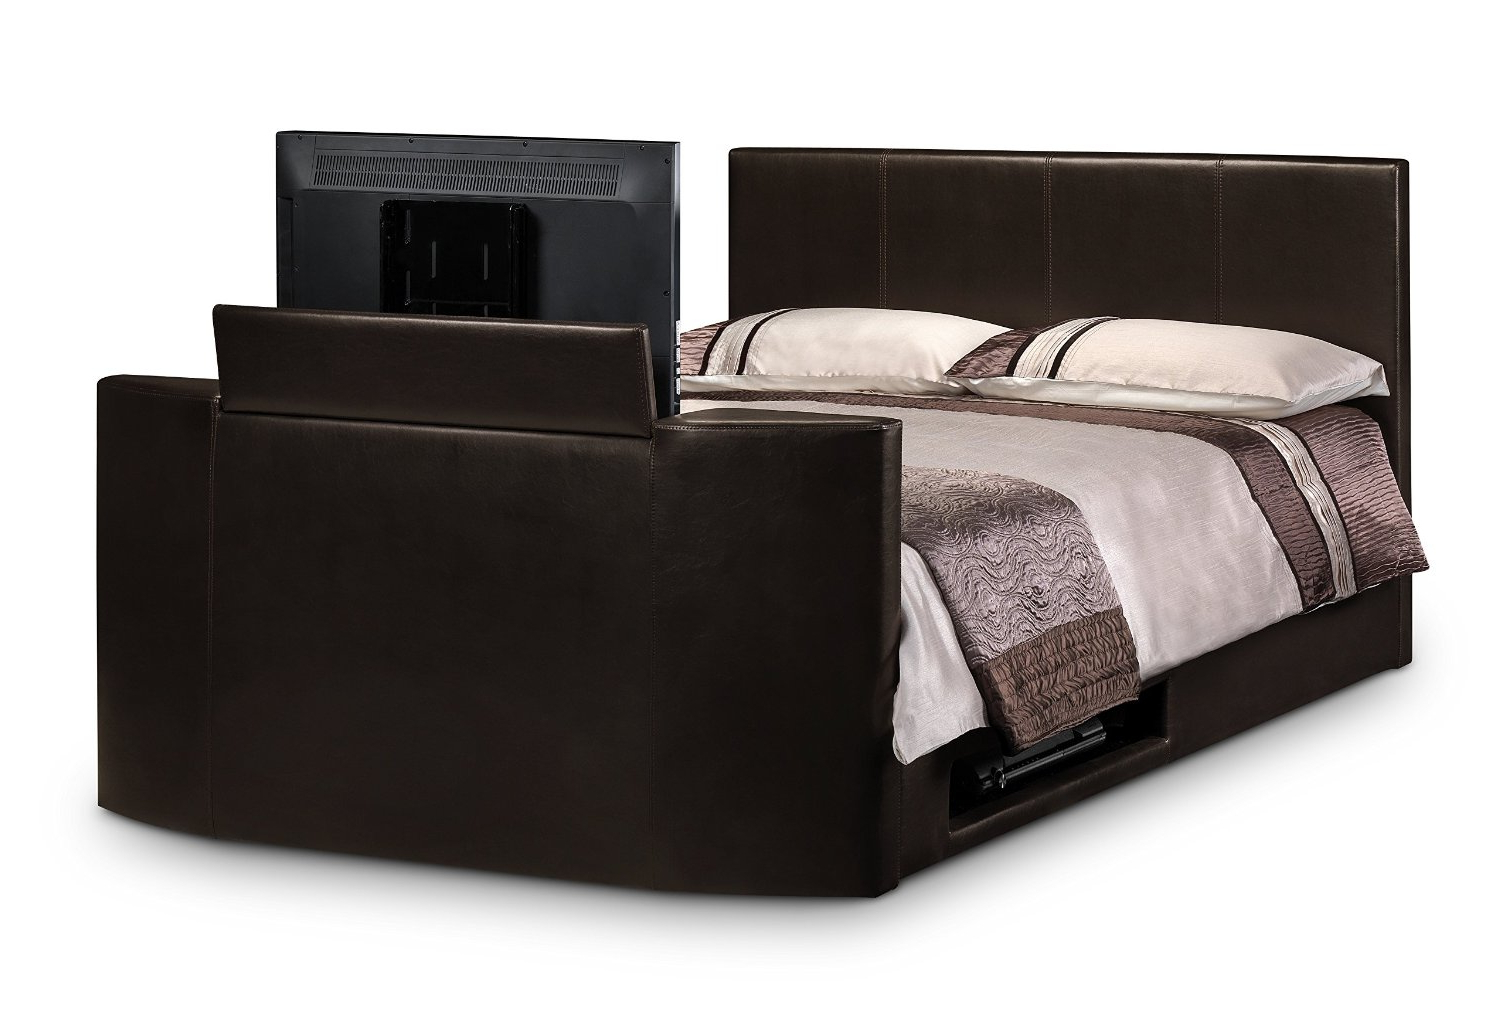 Qosy Pertaining To 32 Inch Tv Beds (View 18 of 20)